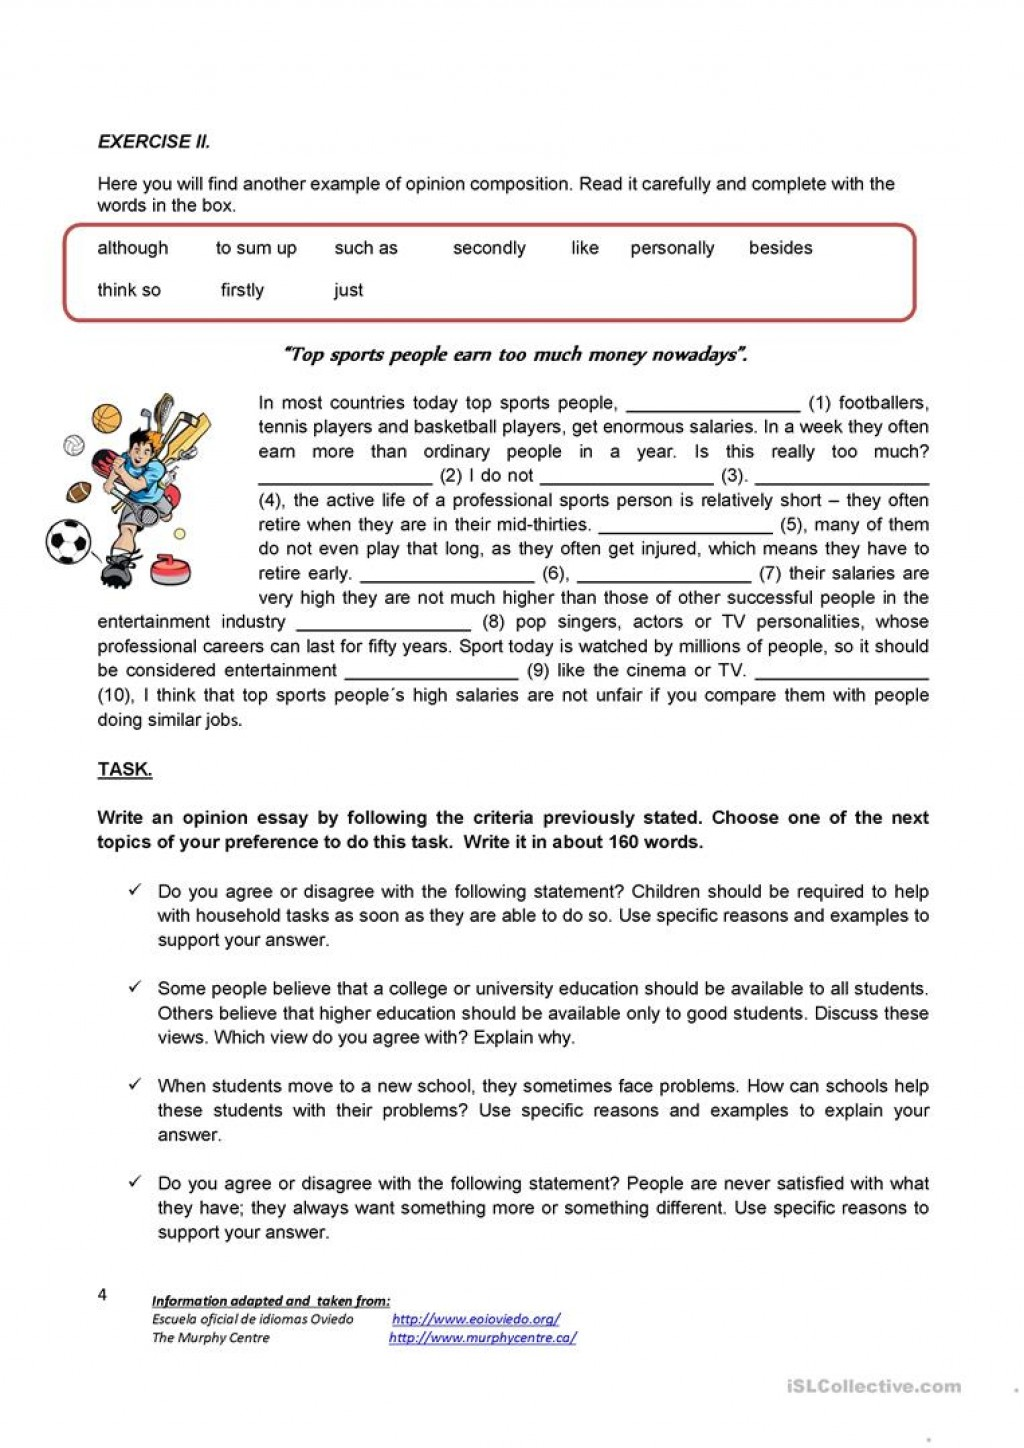 006 Writing An Opinion Essay Creative Tasks 80444 4 Shocking How To Write Argumentative 5th Grade Video Large